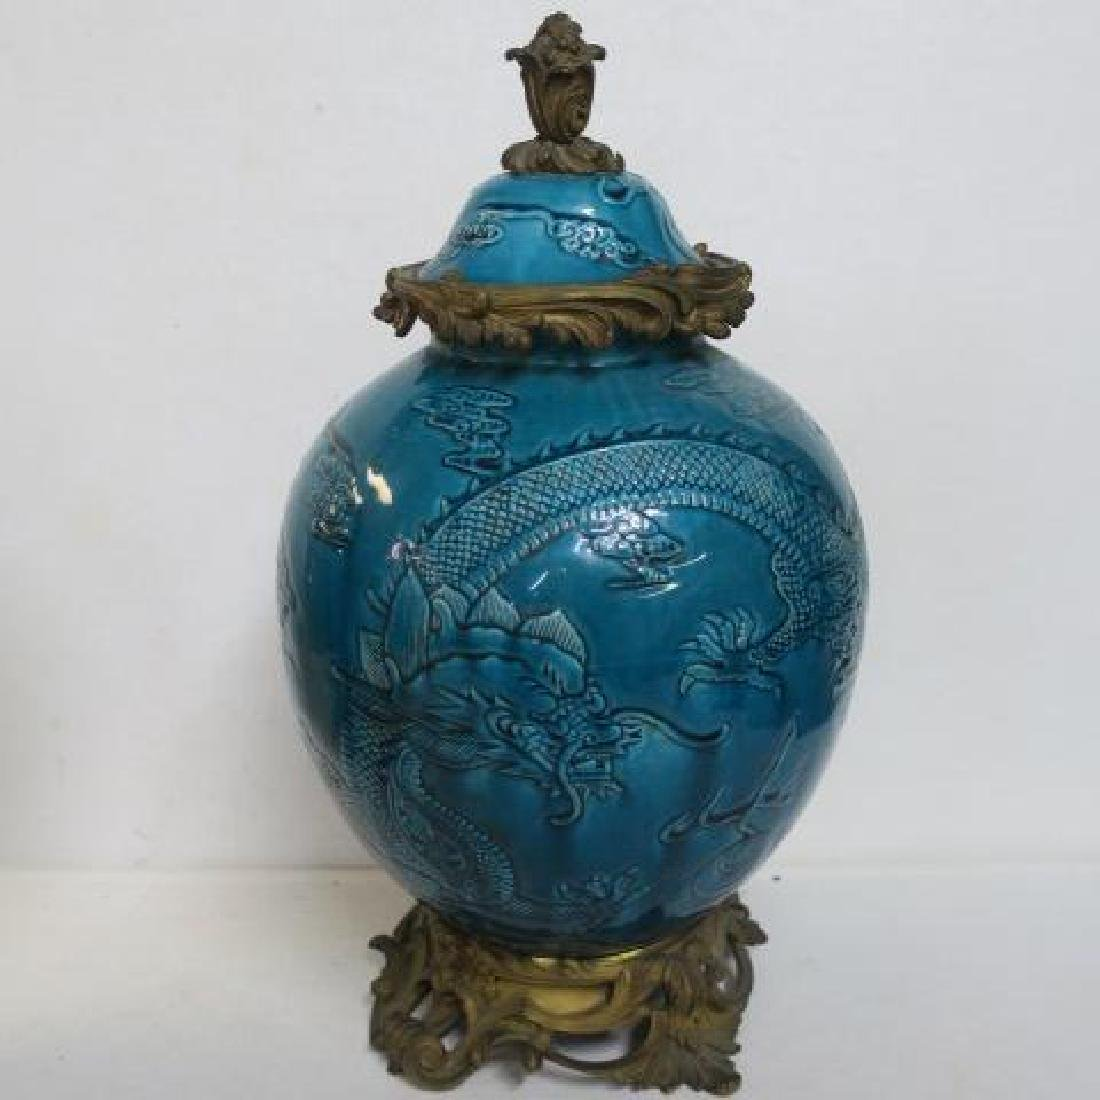 Two French Porcelain Turquoise Asian Style Dragon Jars - 4